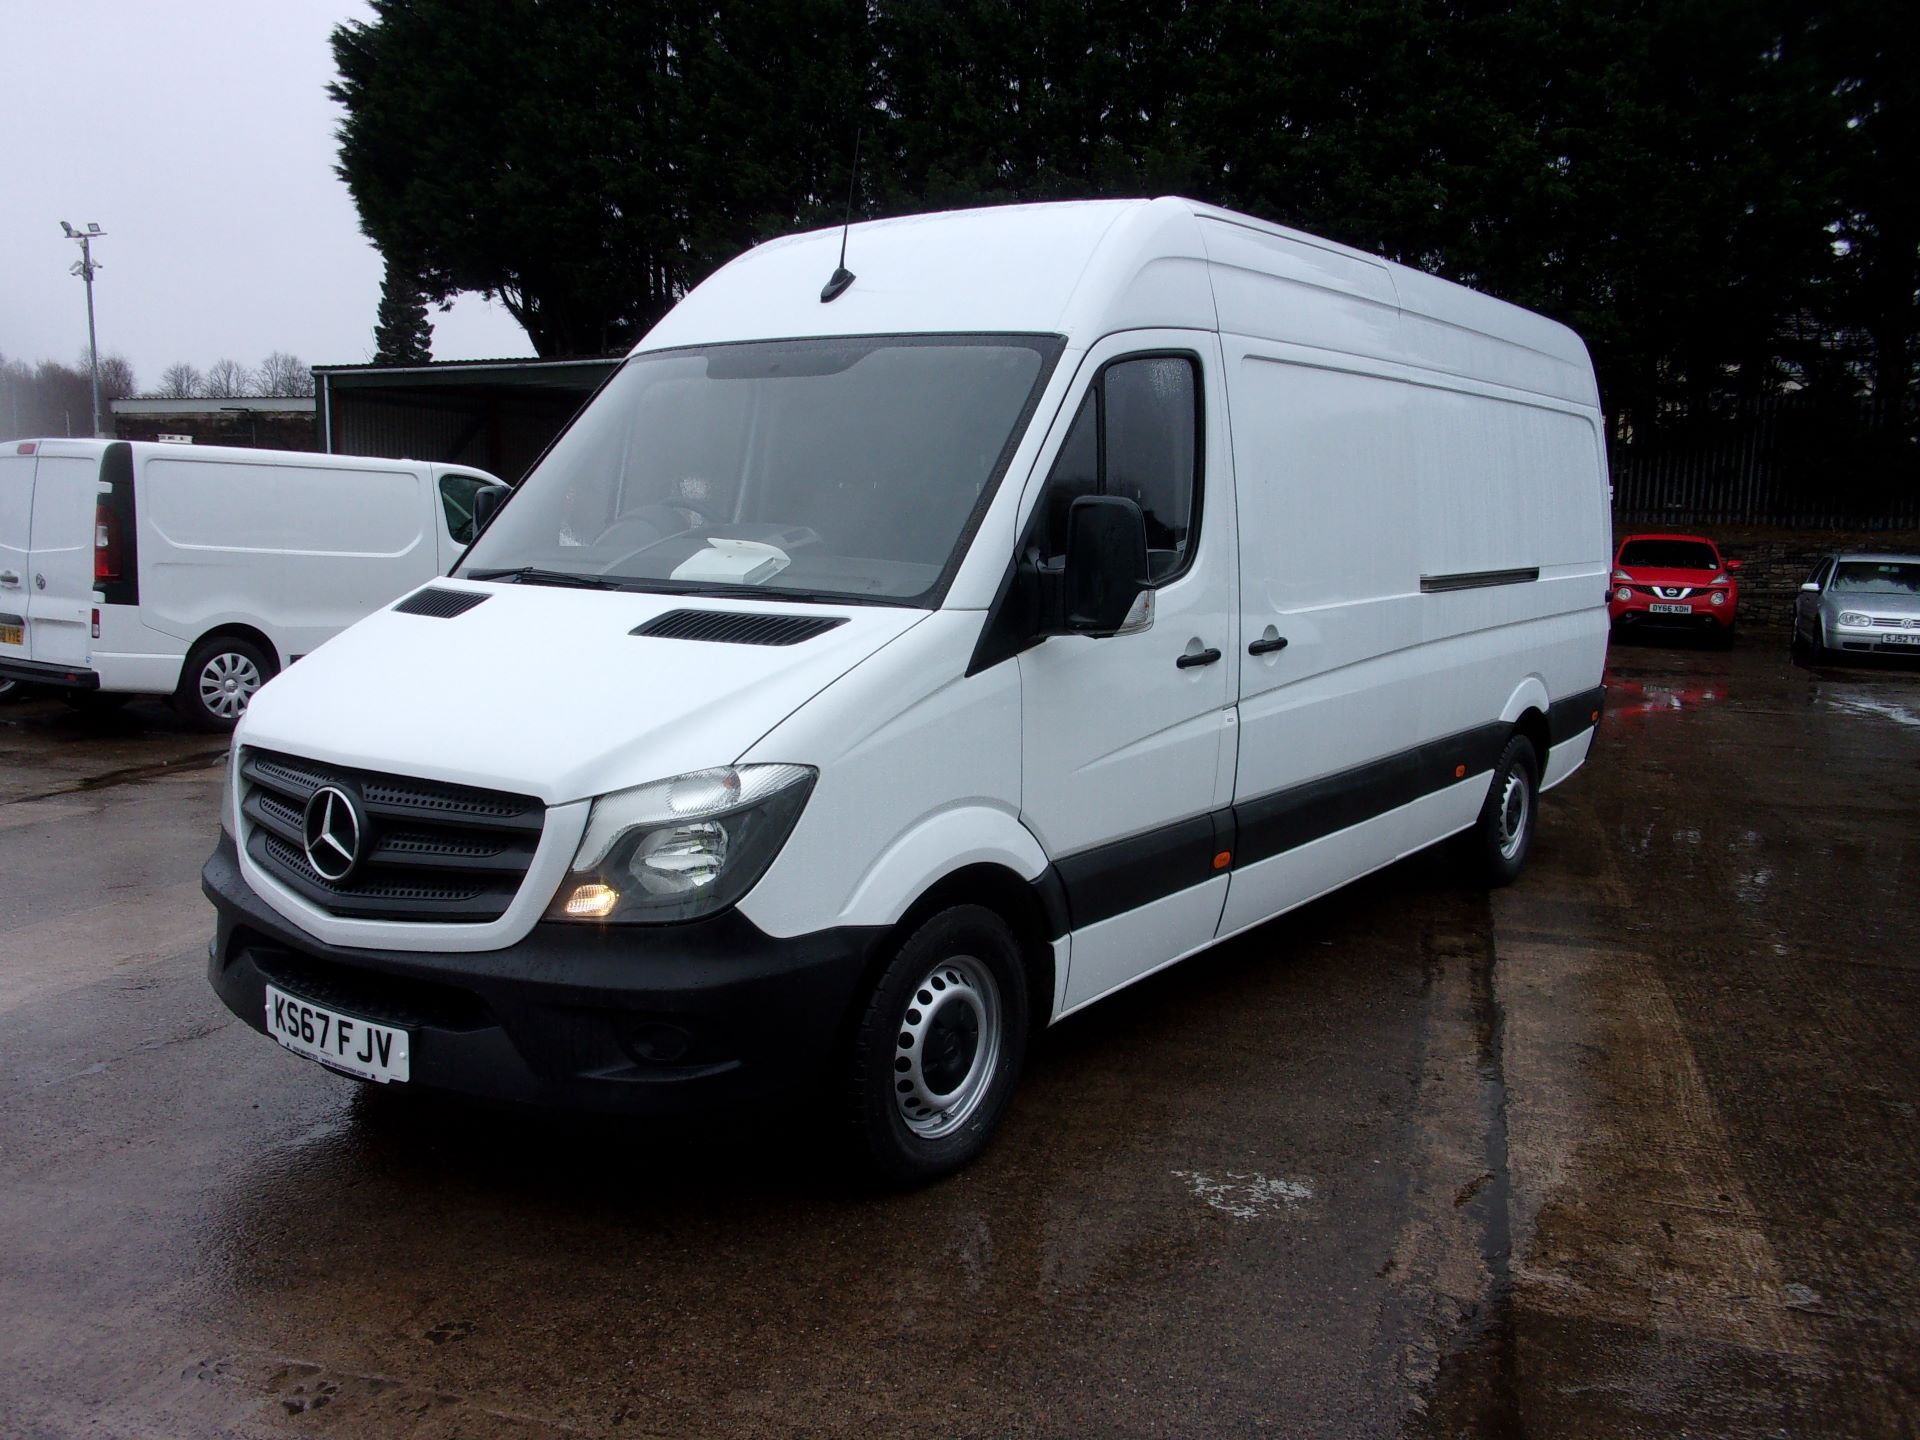 2017 Mercedes-Benz Sprinter 314 CDI LWB HIGH ROOF VAN EURO 6 (KS67FJV) Thumbnail 15